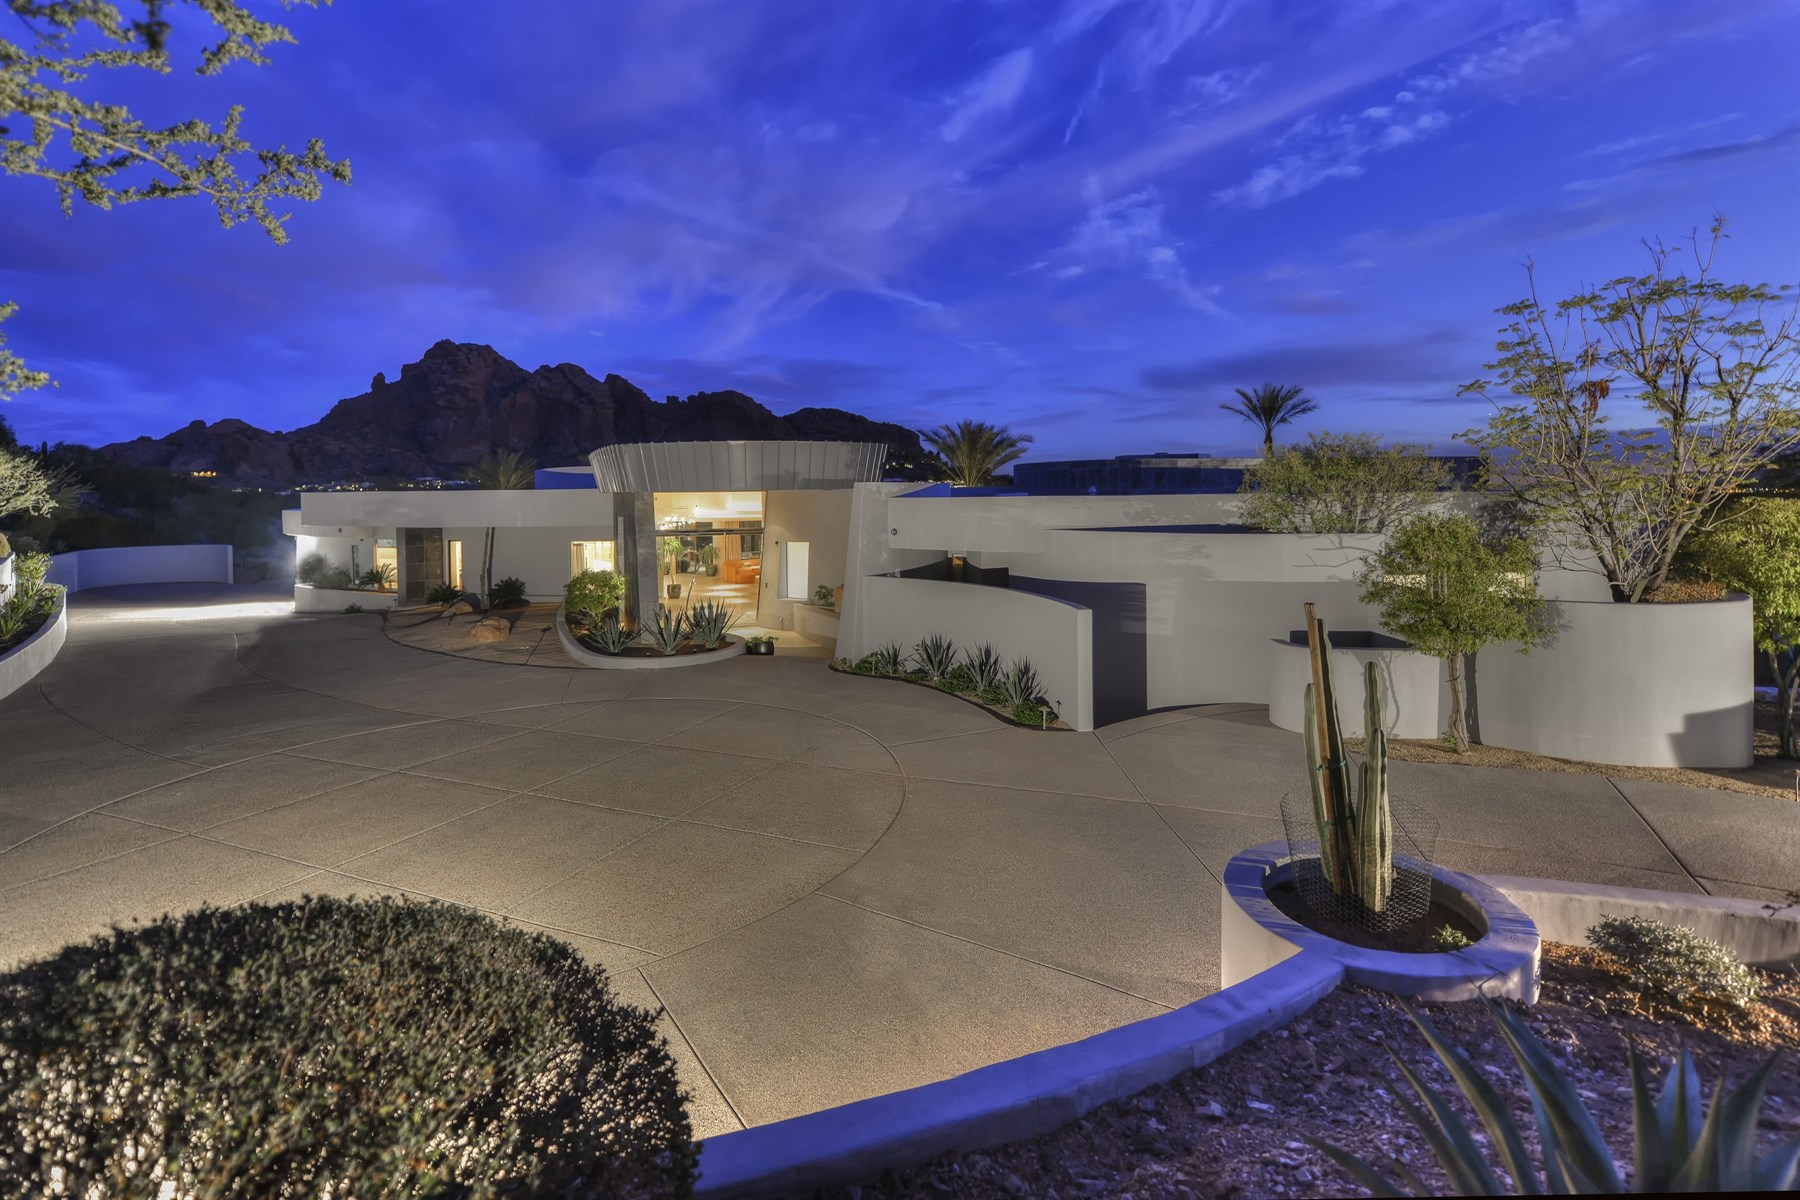 獨棟家庭住宅 為 出售 在 Breathtaking Custom Contemporary Includes Holistic Views Of The Praying Monk 6021 N 44th Street Paradise Valley, 亞利桑那州, 85253 美國